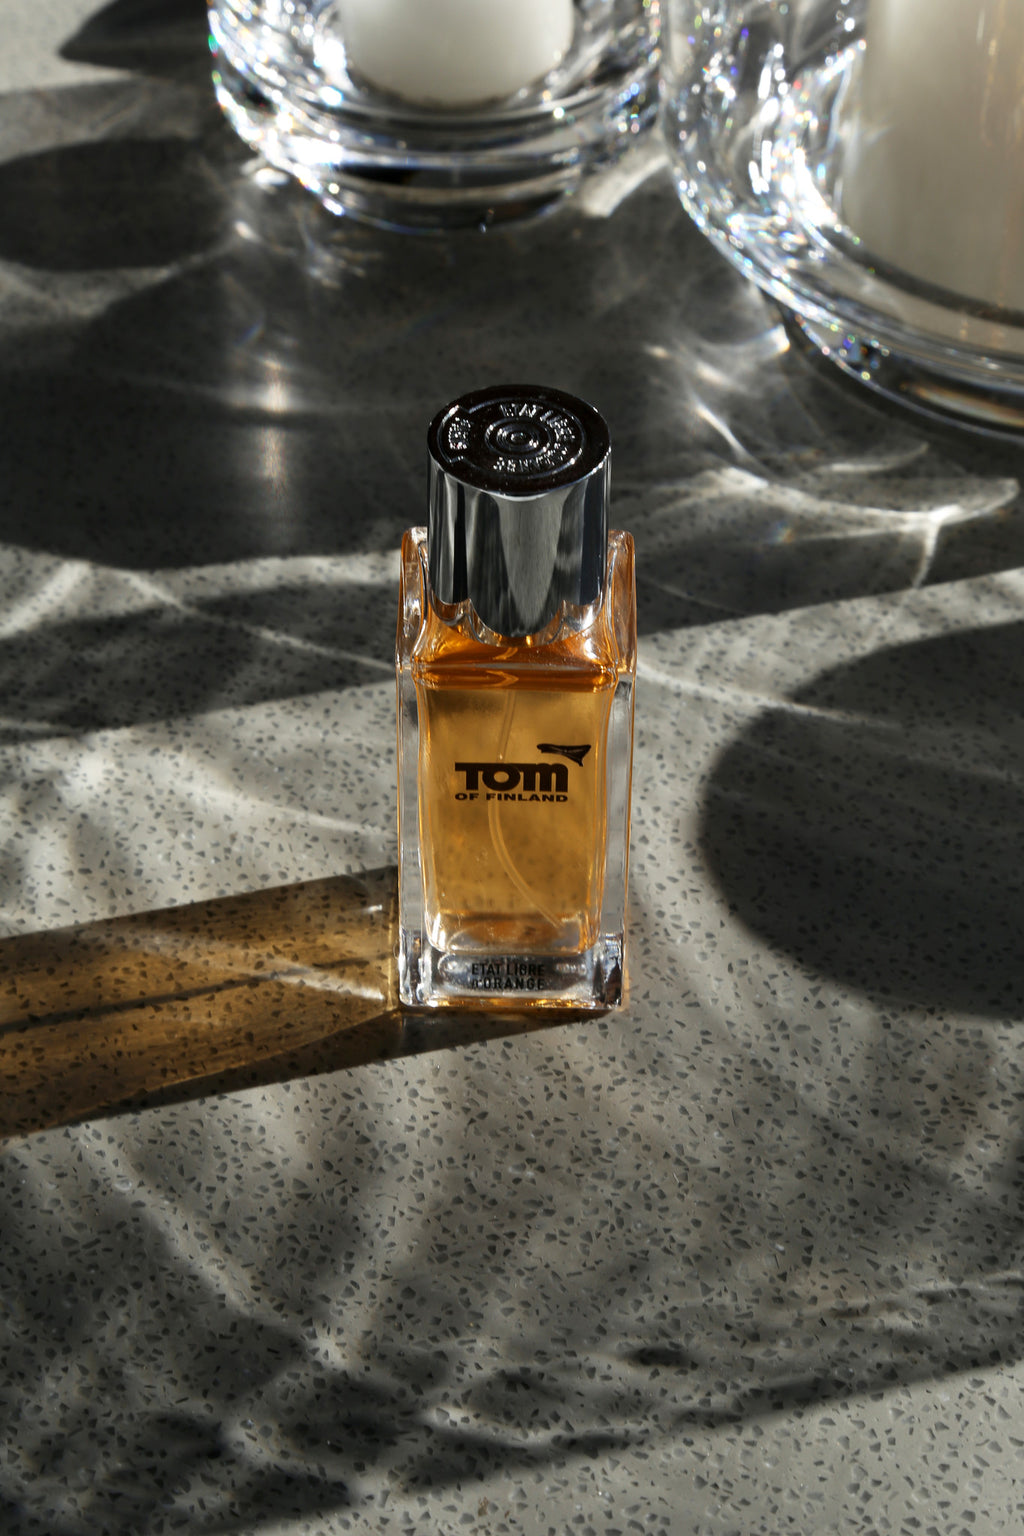 Tom of Finland Store : Tom of Finland Fragrance Cologne by Etat Libre D'Orange - gay